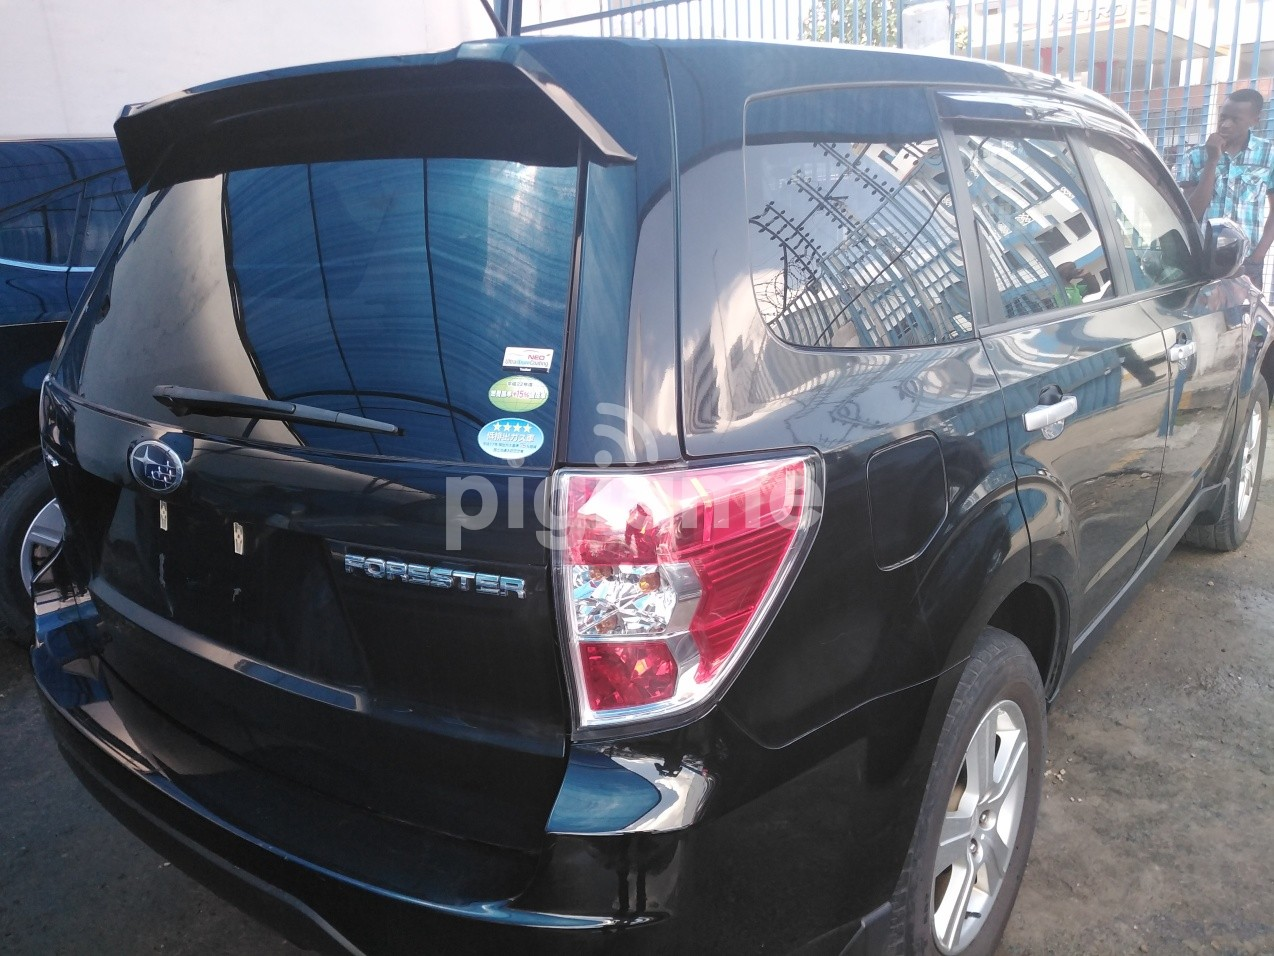 Used Abroad Subaru Forester 2 0 Automatic at KSh 1,950,000